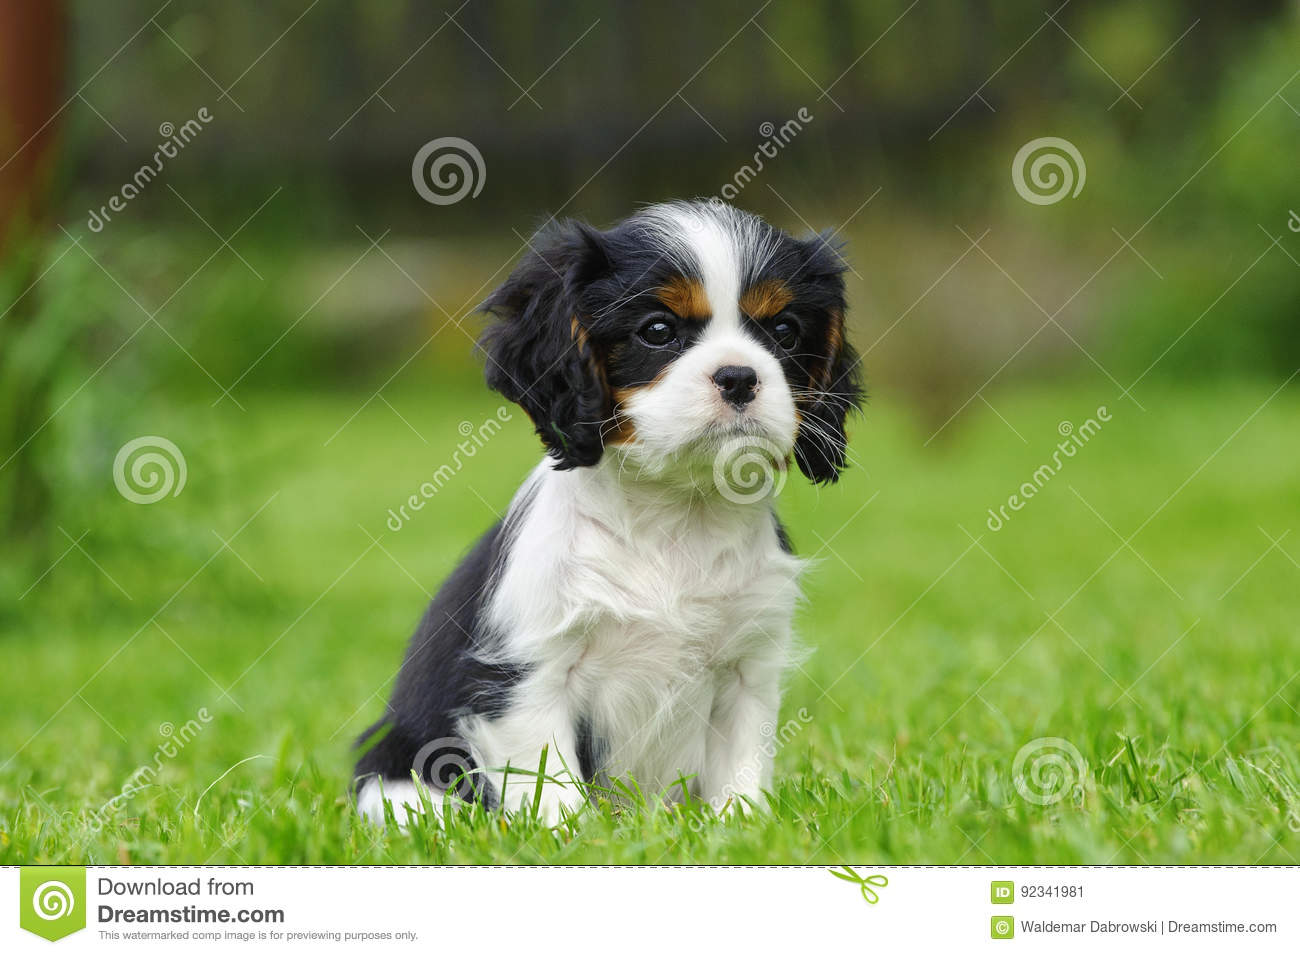 Cavalier King Charles Spaniel Puppy Stock Image Image Of Cavie Canine 92341981